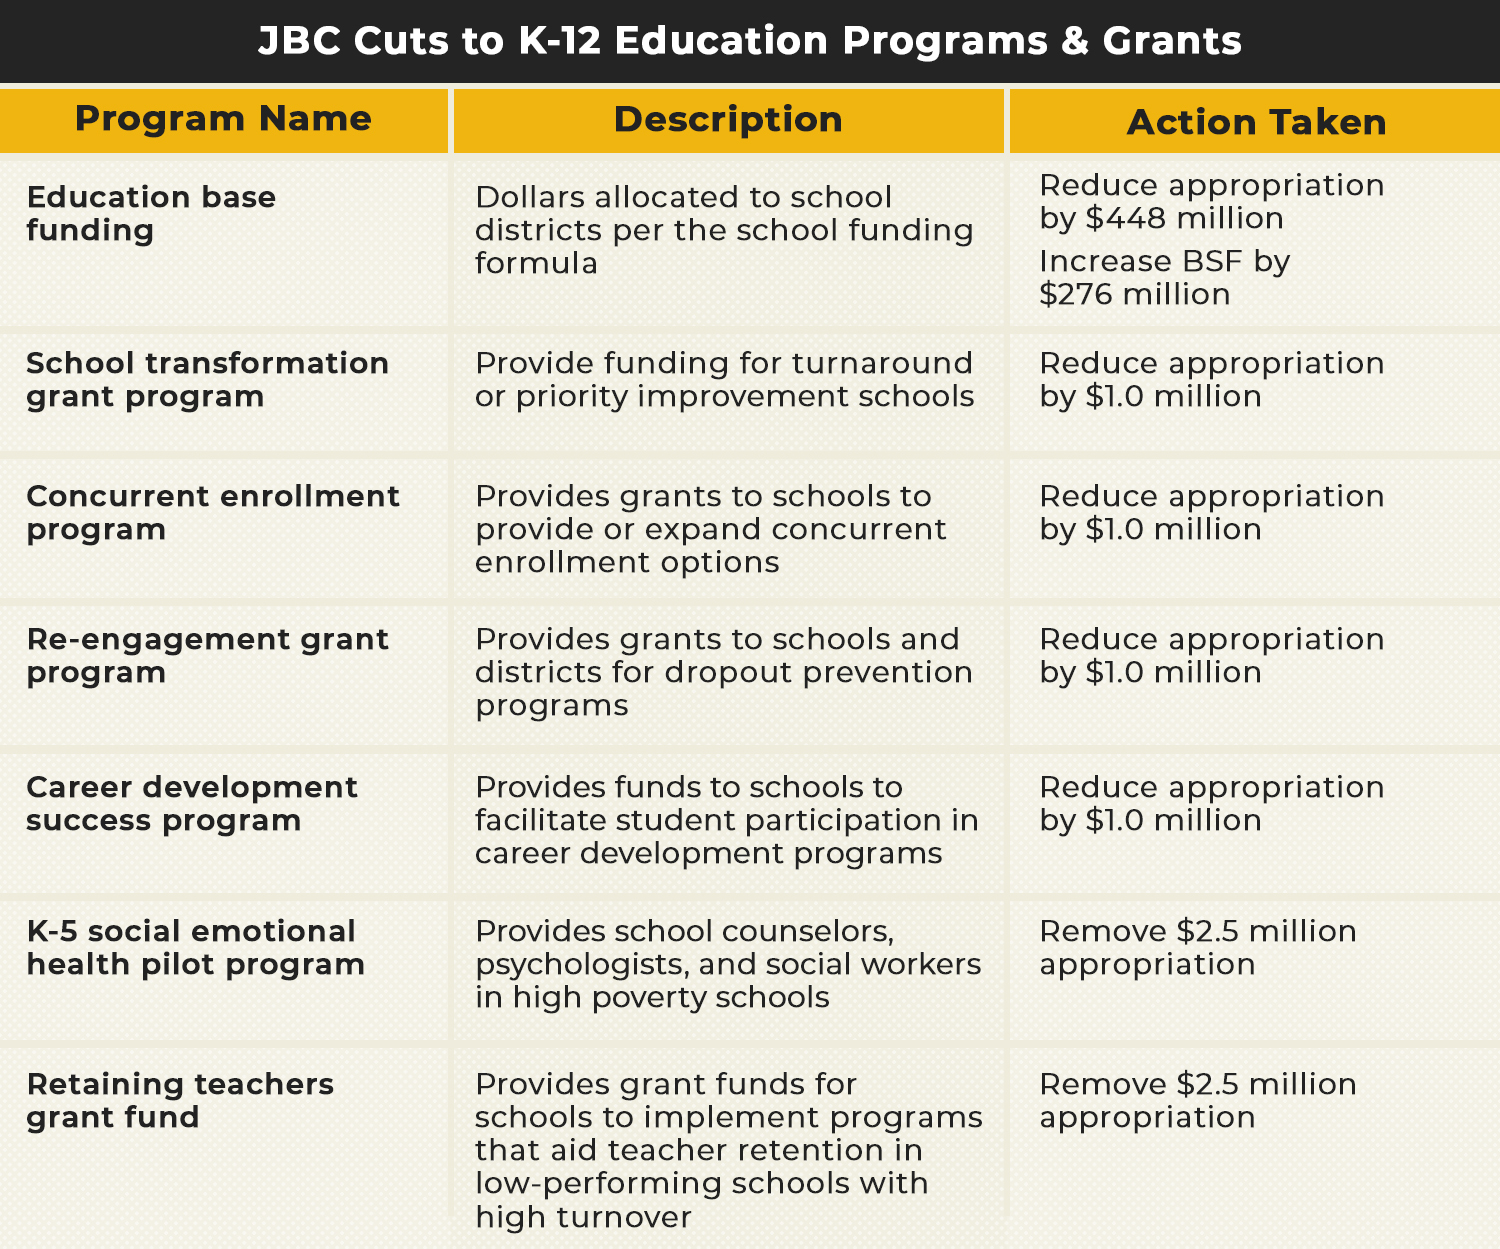 JBC cuts to k-12